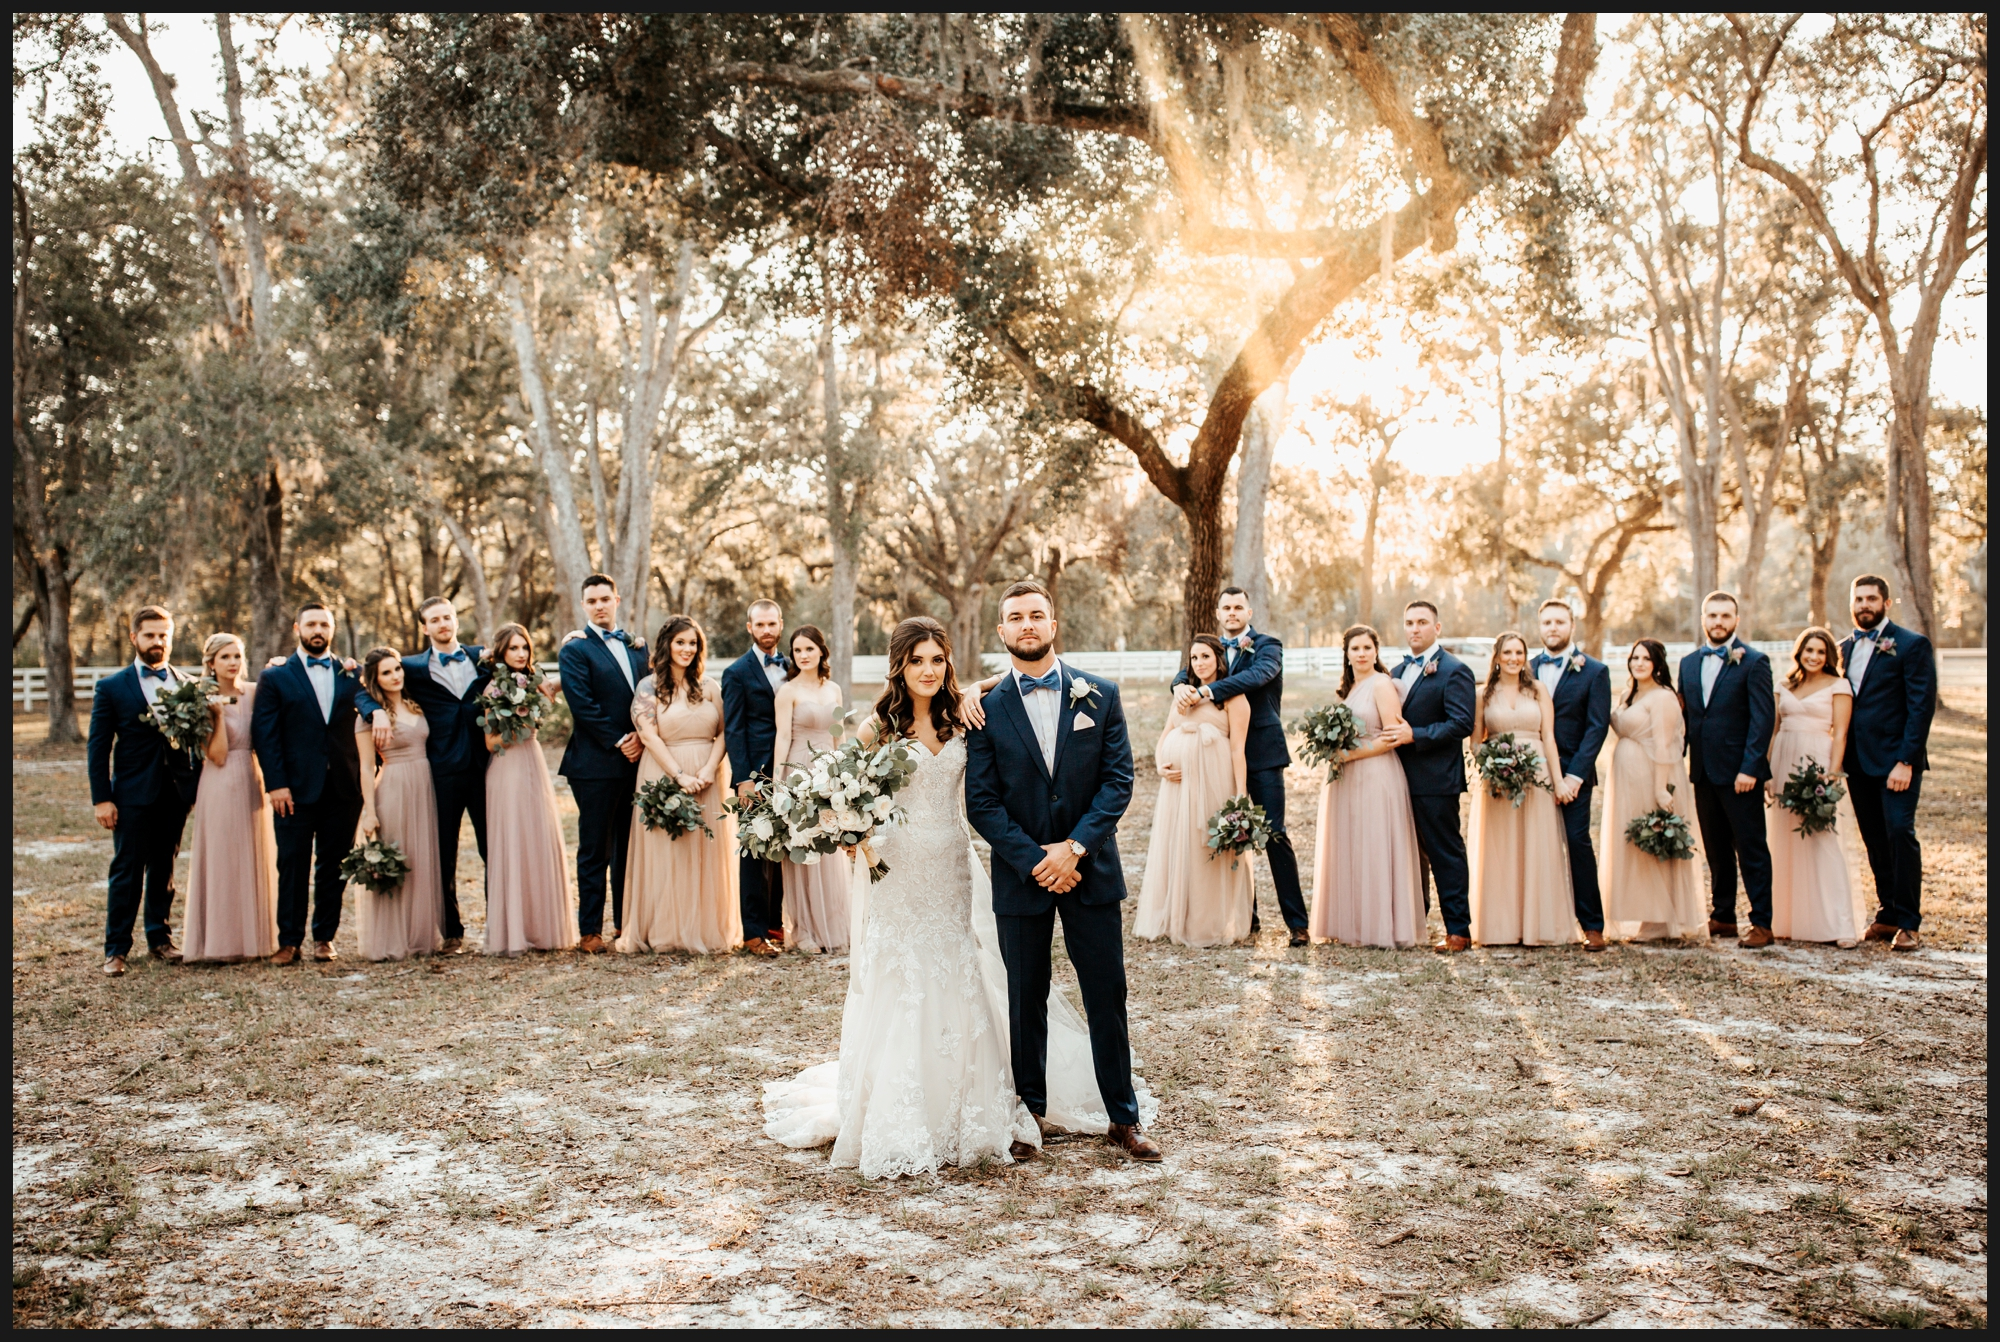 Orlando-Wedding-Photographer-destination-wedding-photographer-florida-wedding-photographer-bohemian-wedding-photographer_1094.jpg